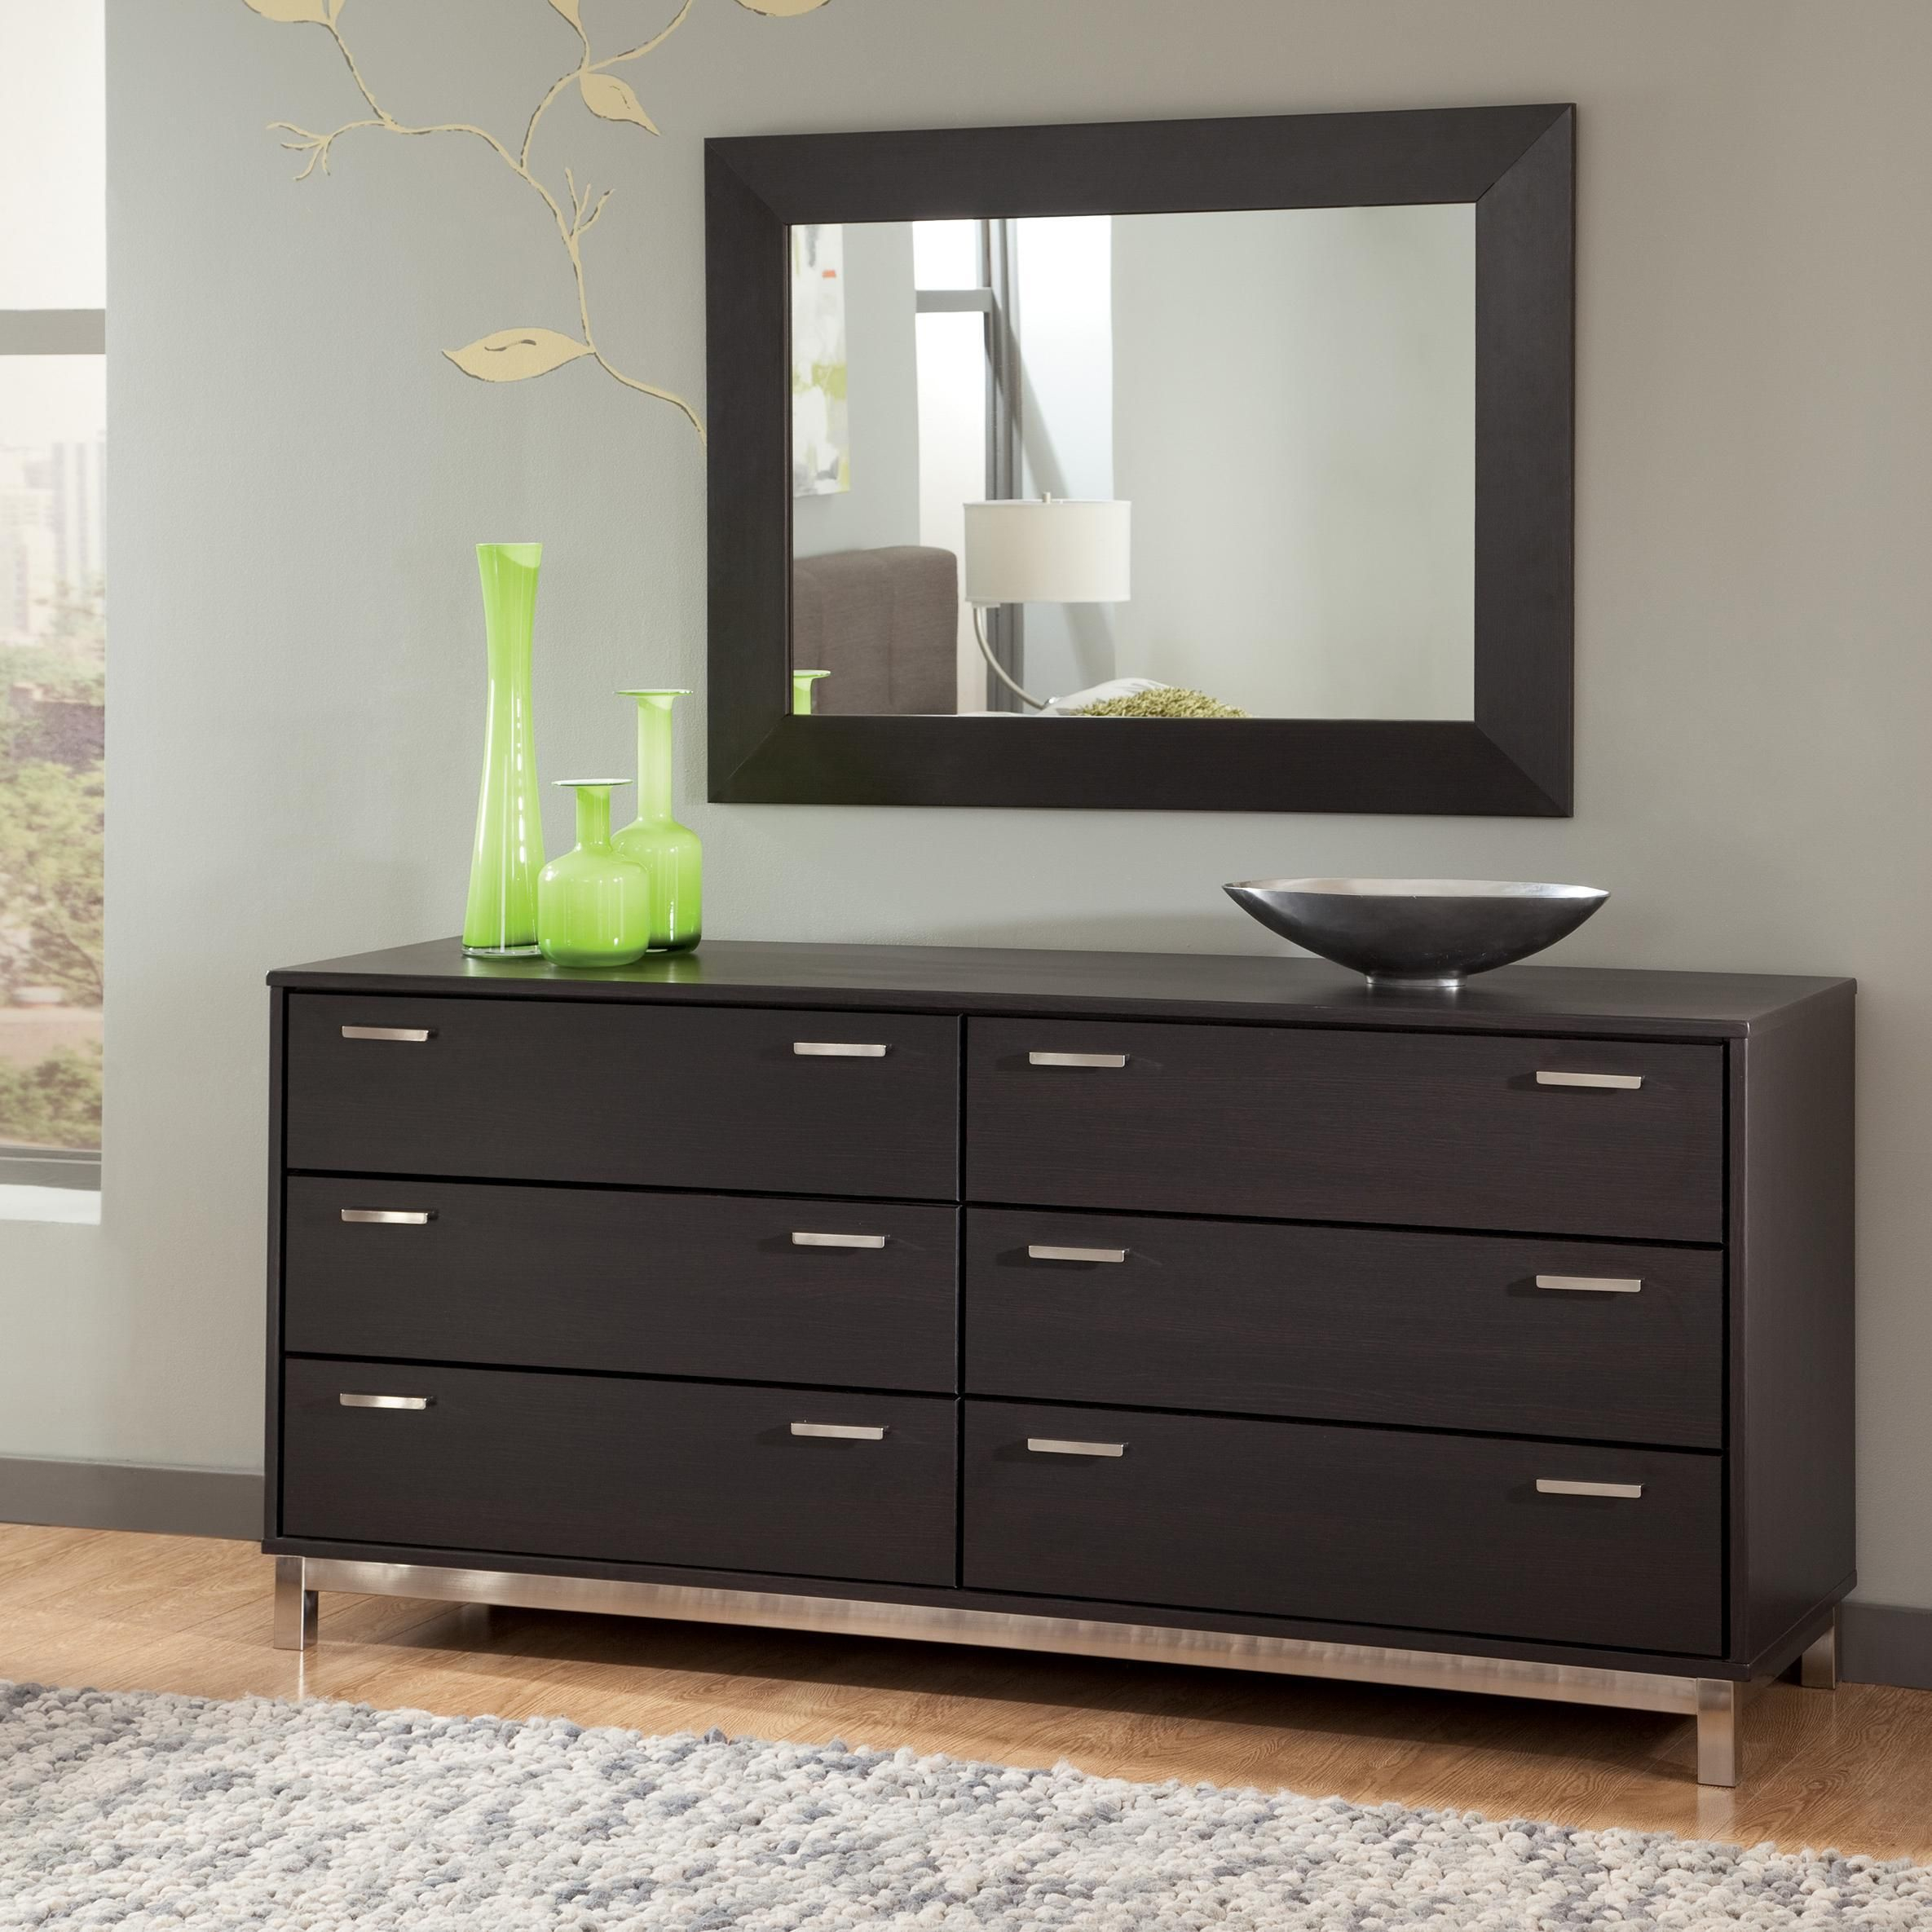 Master Bedroom Dresser Room In The House Bedroom In 2019 within Modern Bedroom Dressers